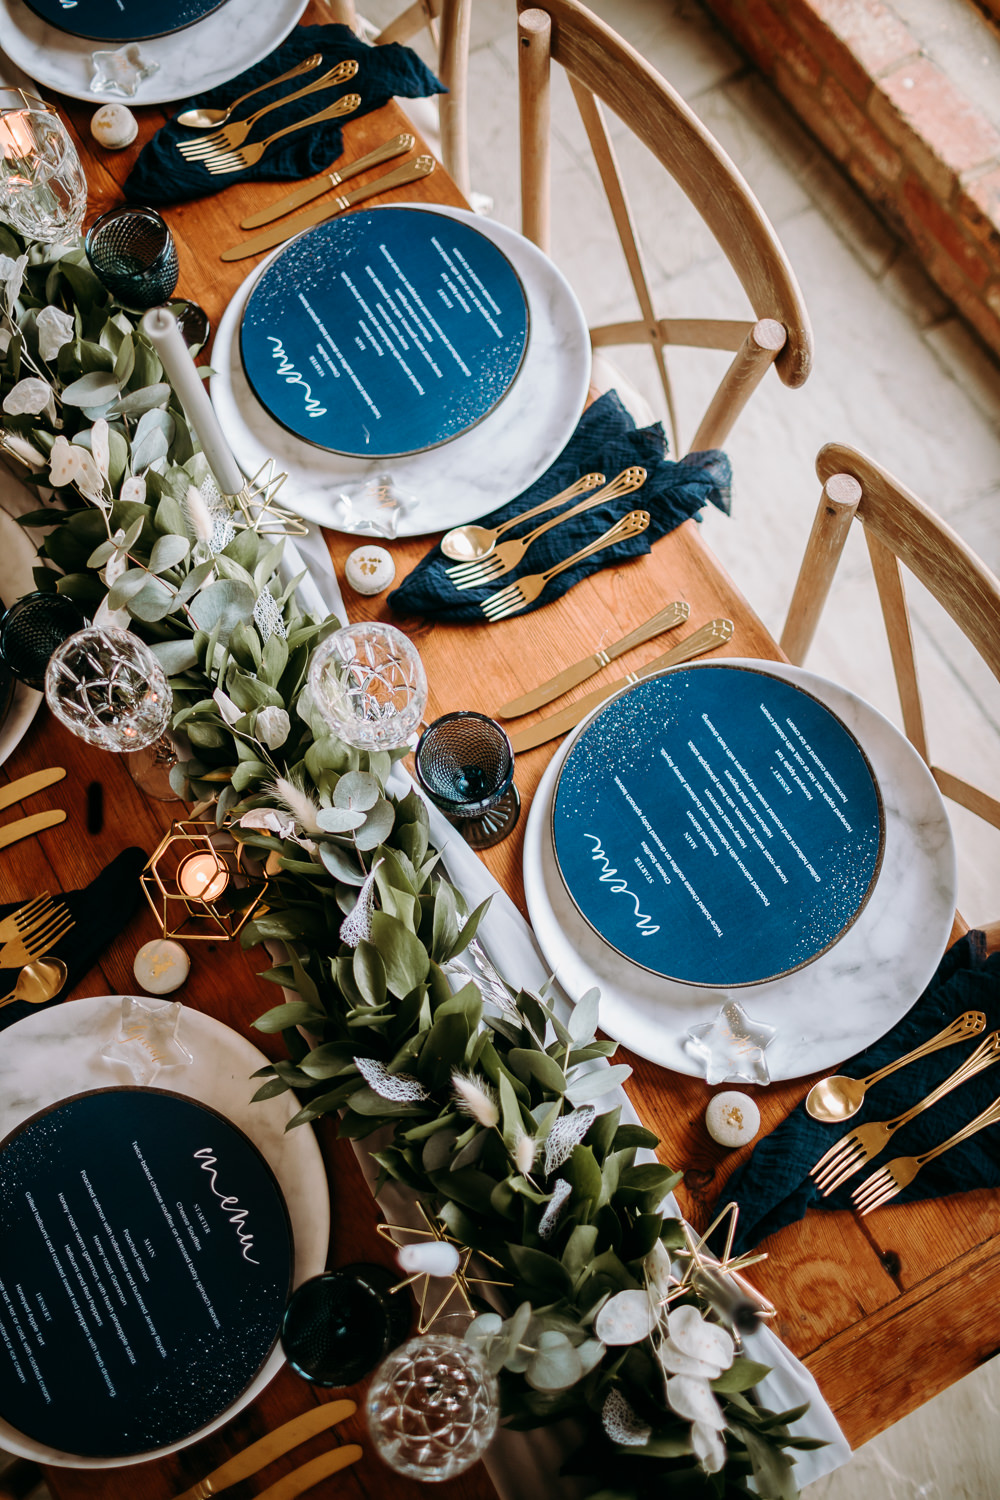 Table Tablescape Decor Decoration Table Runner Greenery Foliage Candles Blue Place Setting Menu Cards Gold Celestial Wedding Ideas Christine Thirdwheeling